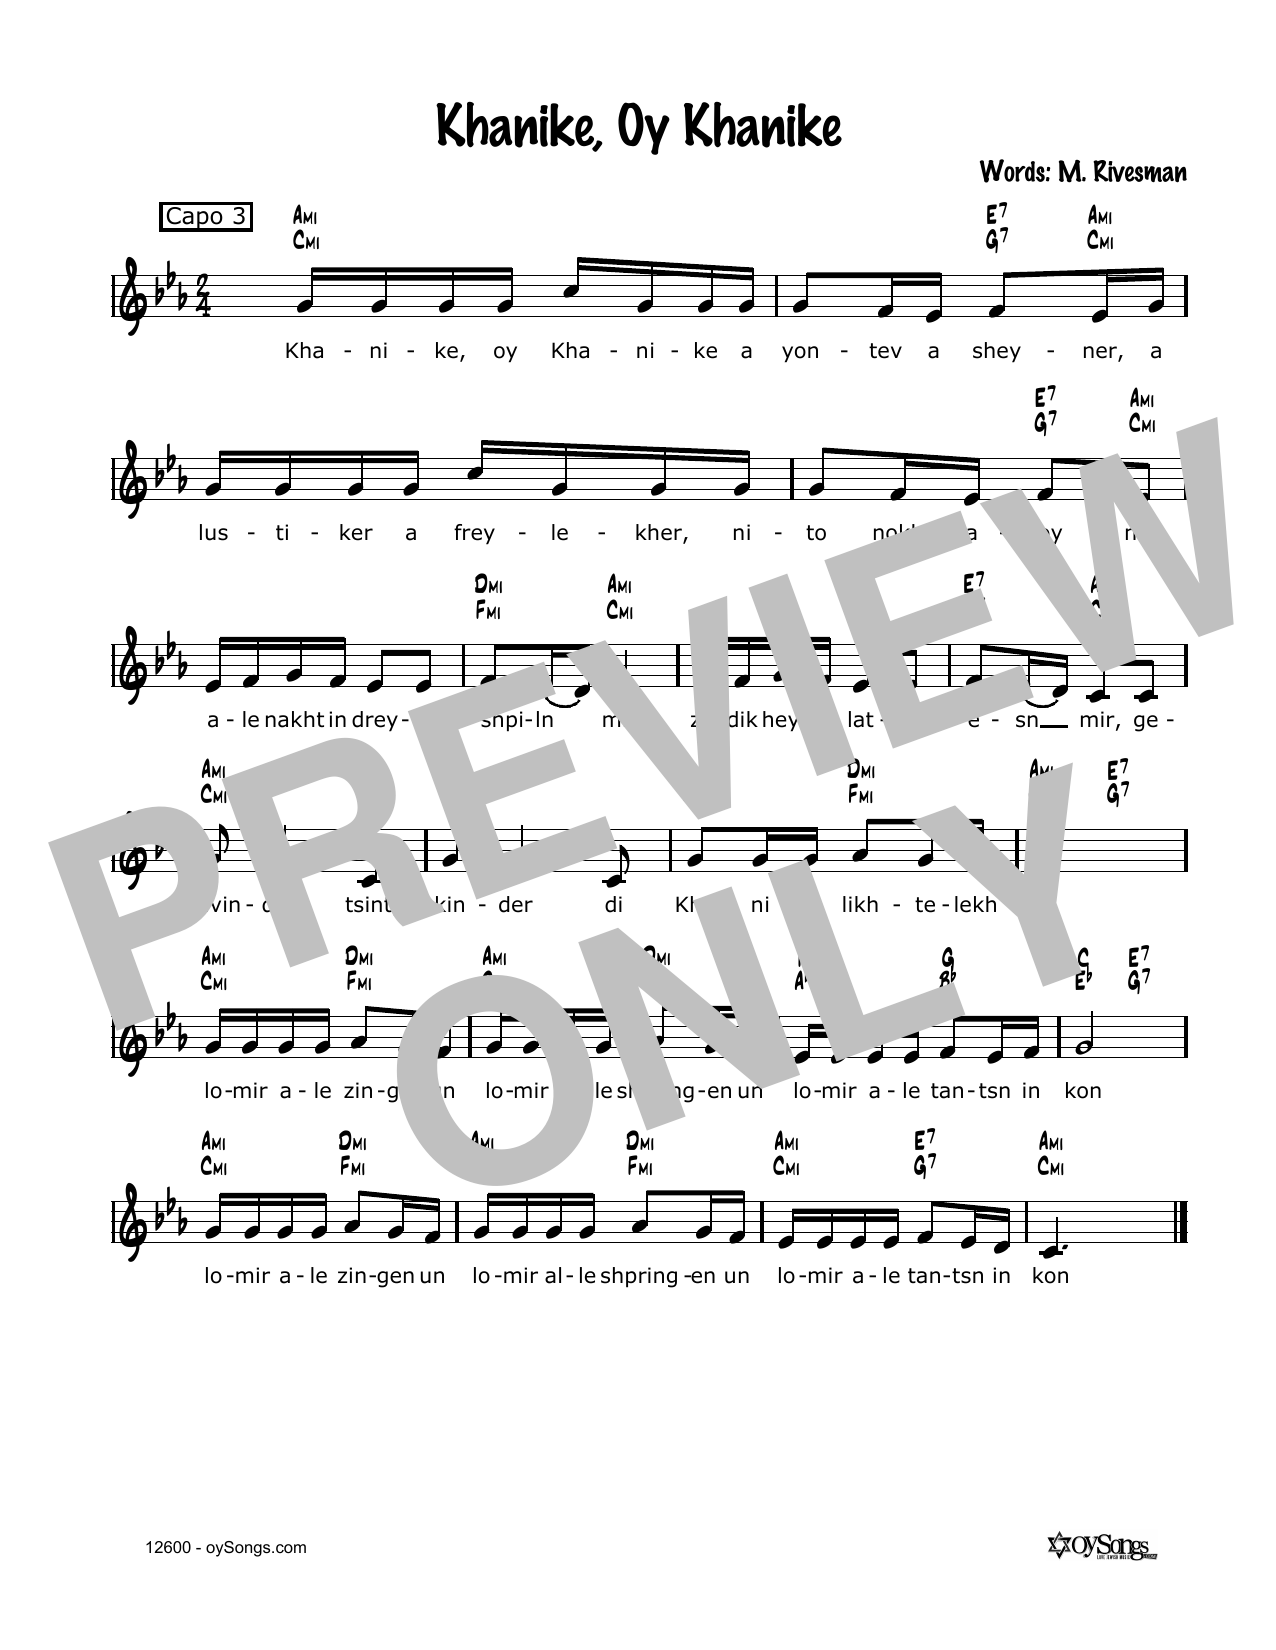 Cindy Paley Khanike, Oy Khanike sheet music notes and chords. Download Printable PDF.